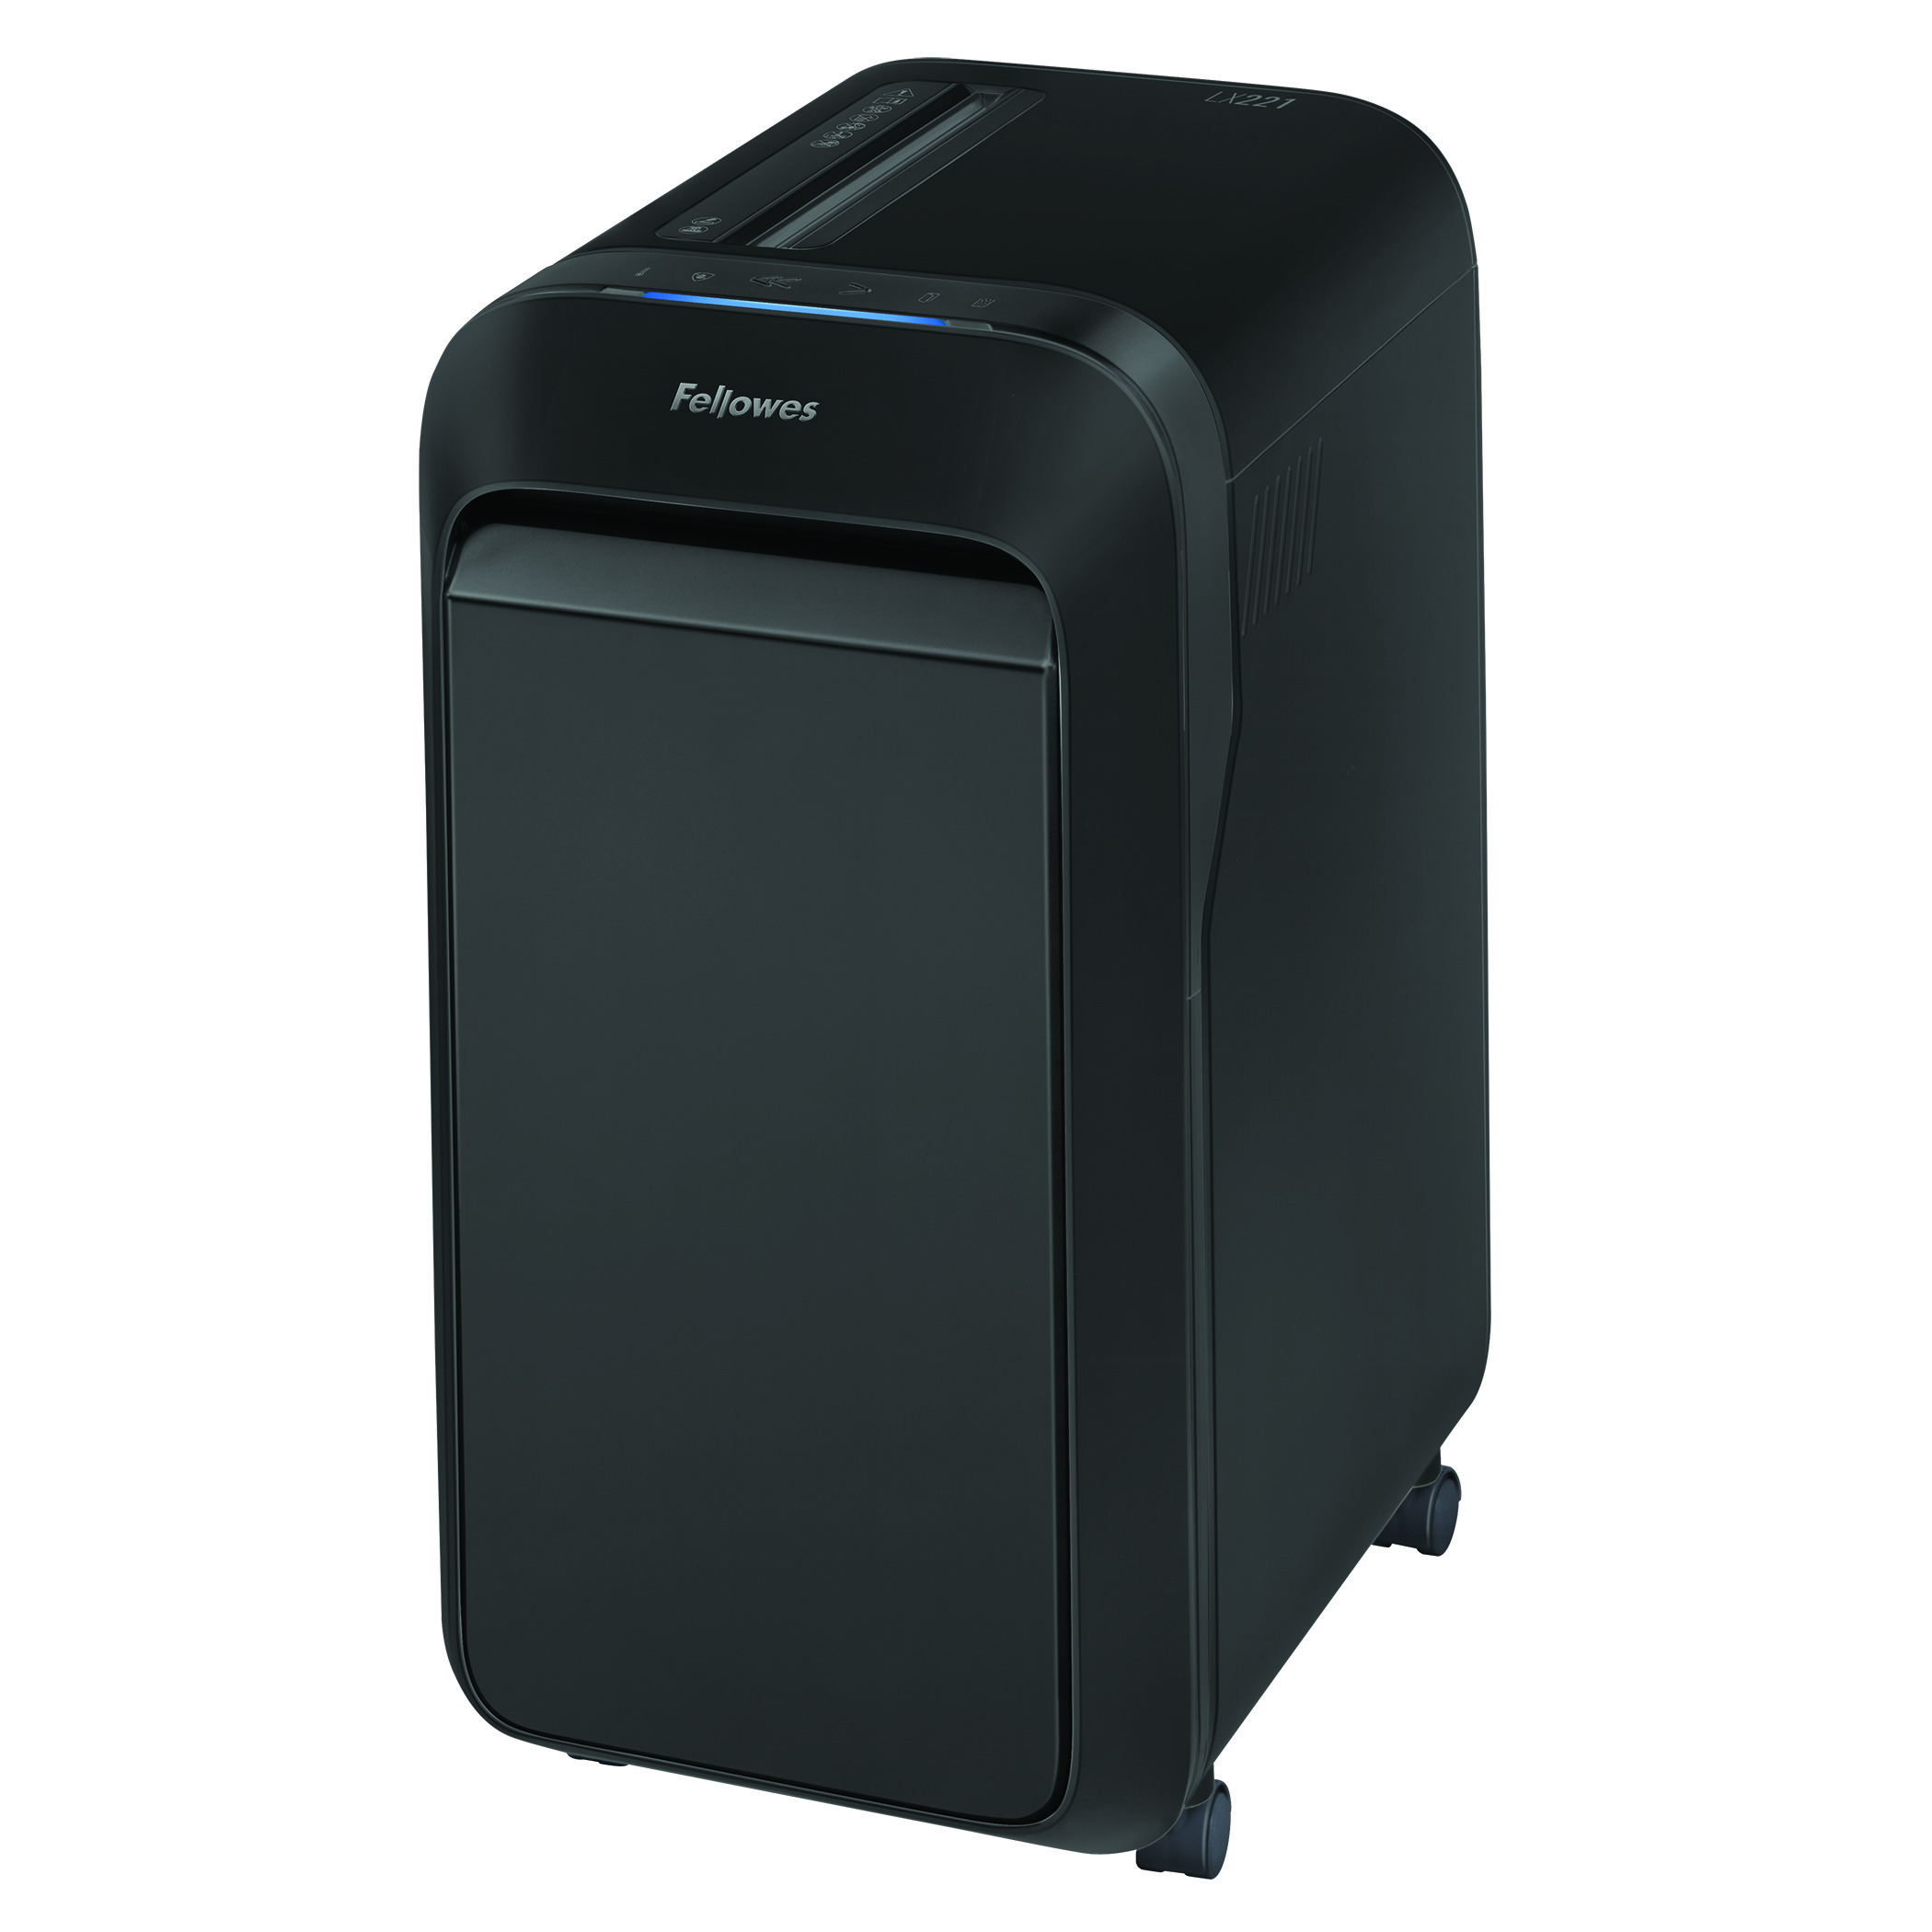 Shredders Fellowes Microshred LX221 Black Shredder